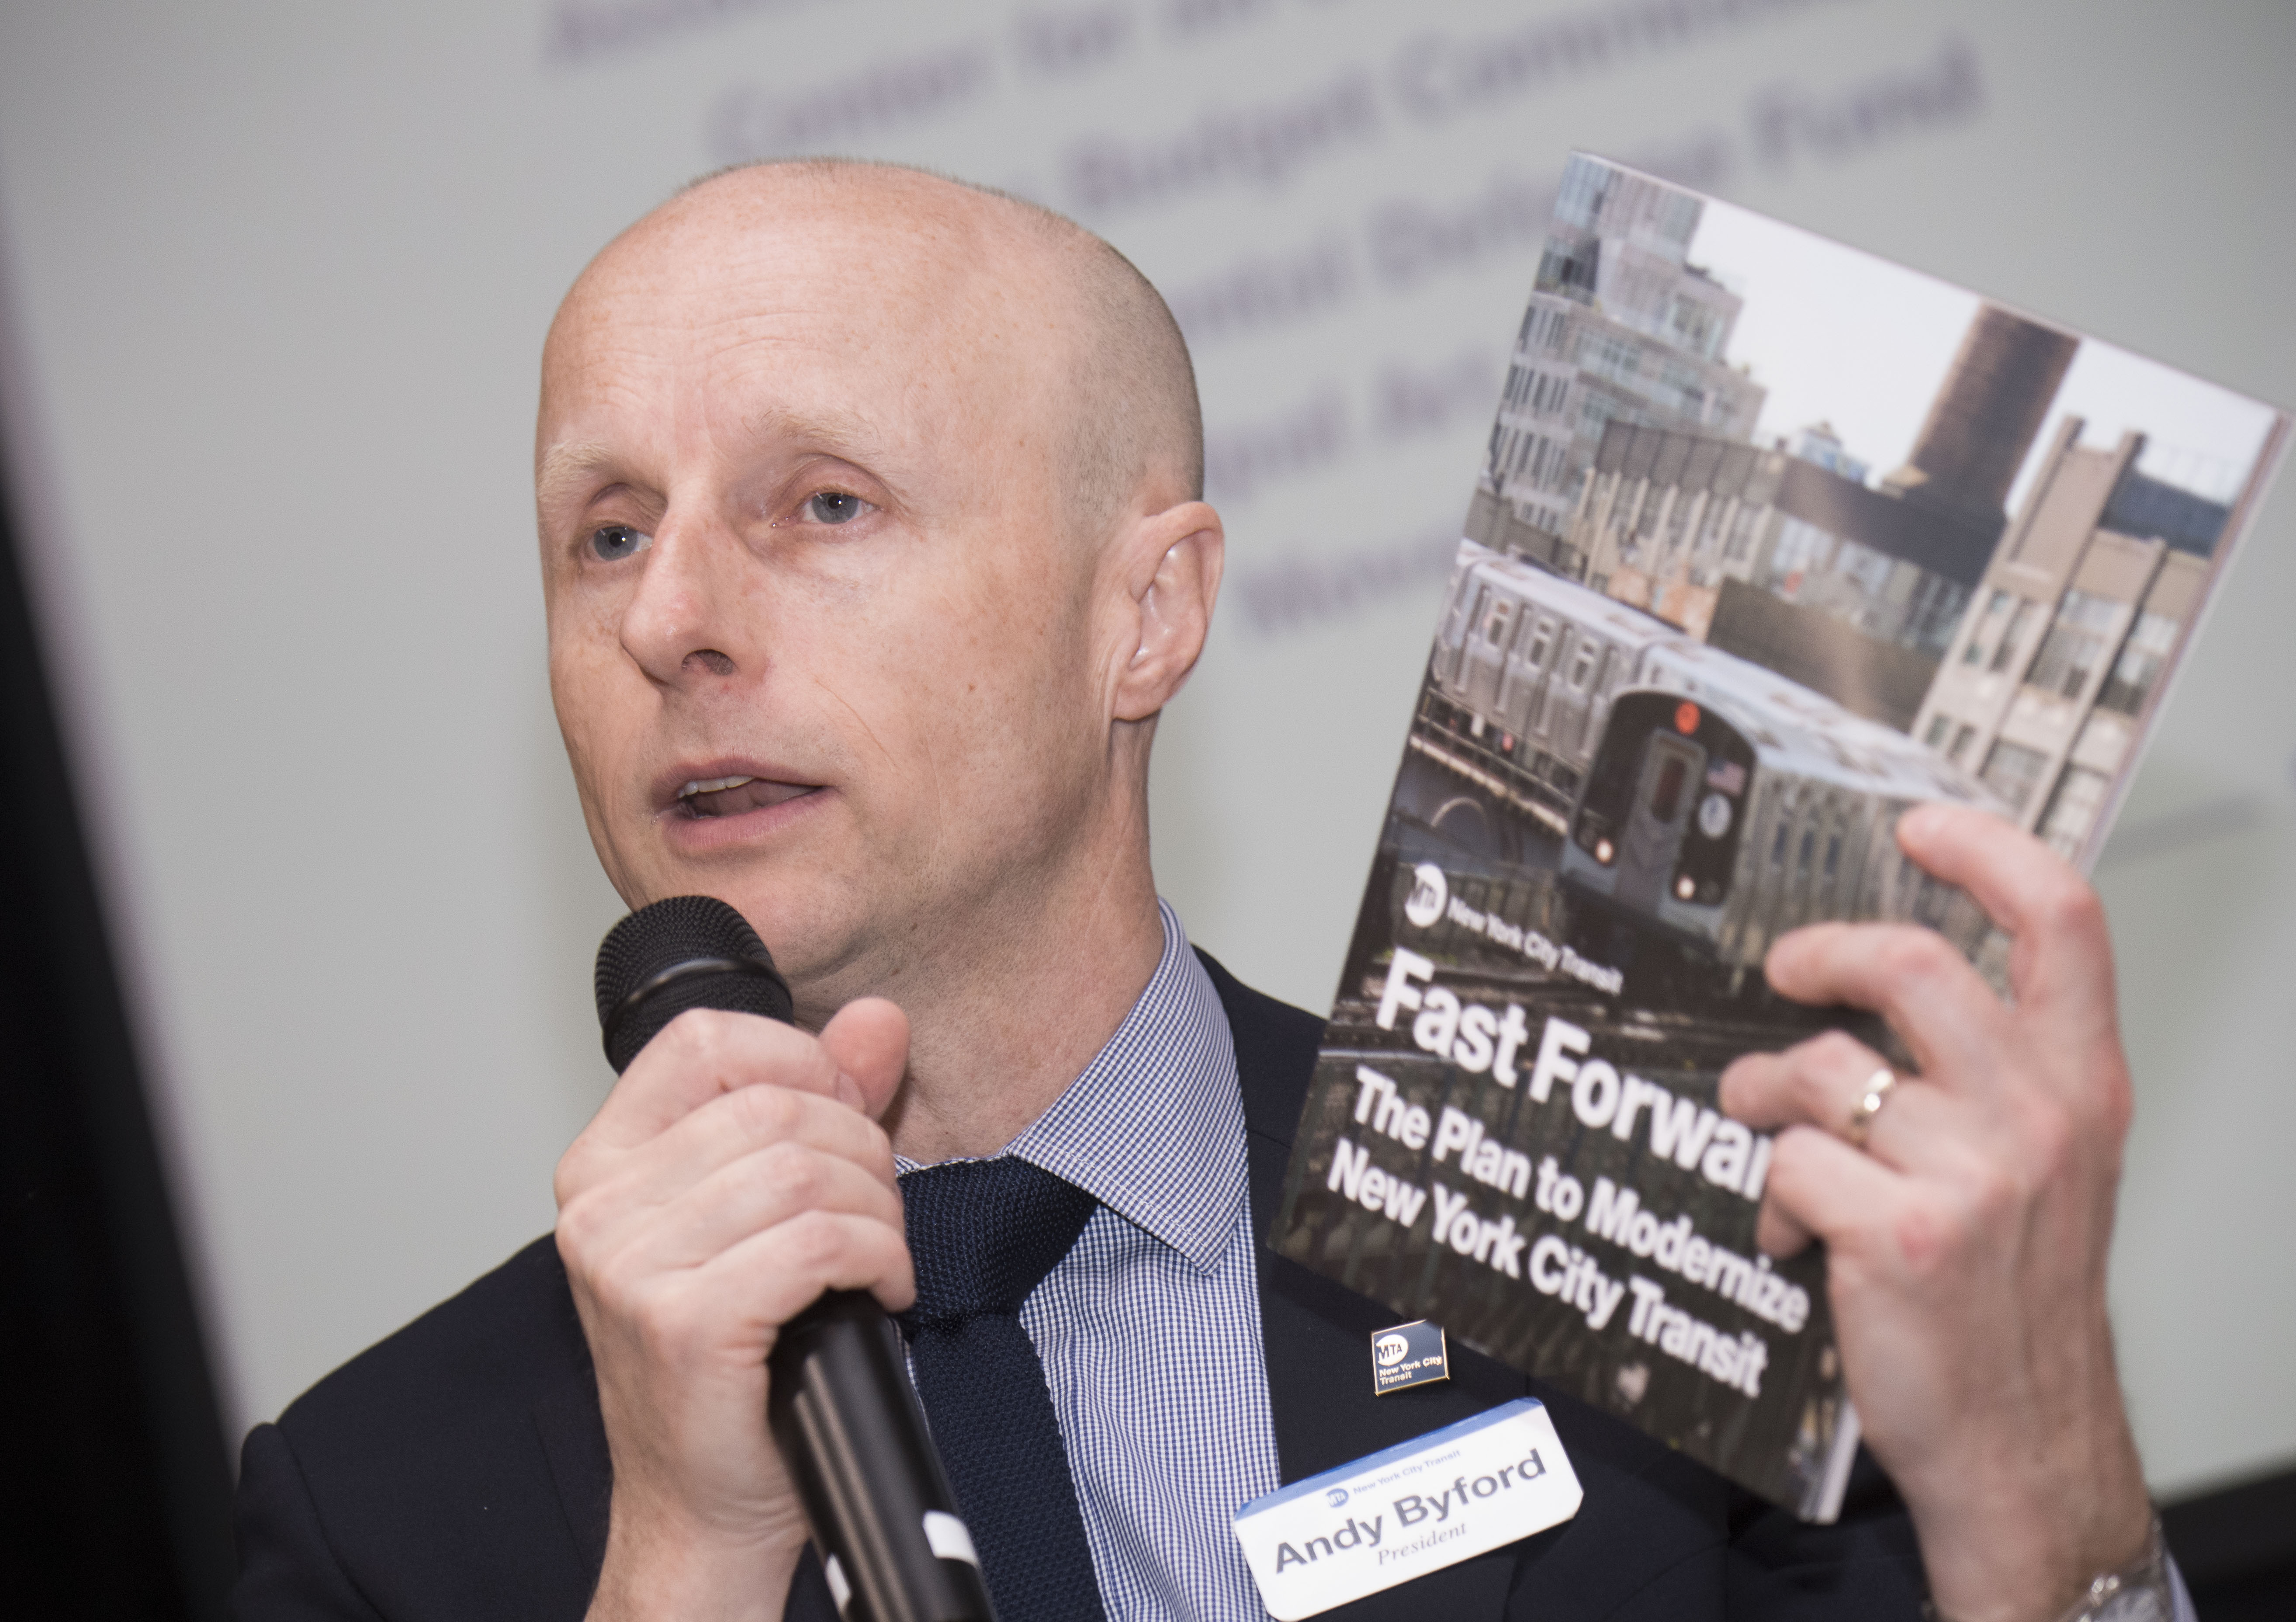 Andy Byford, NYCT President, presents his Fast Forward NYC Plan